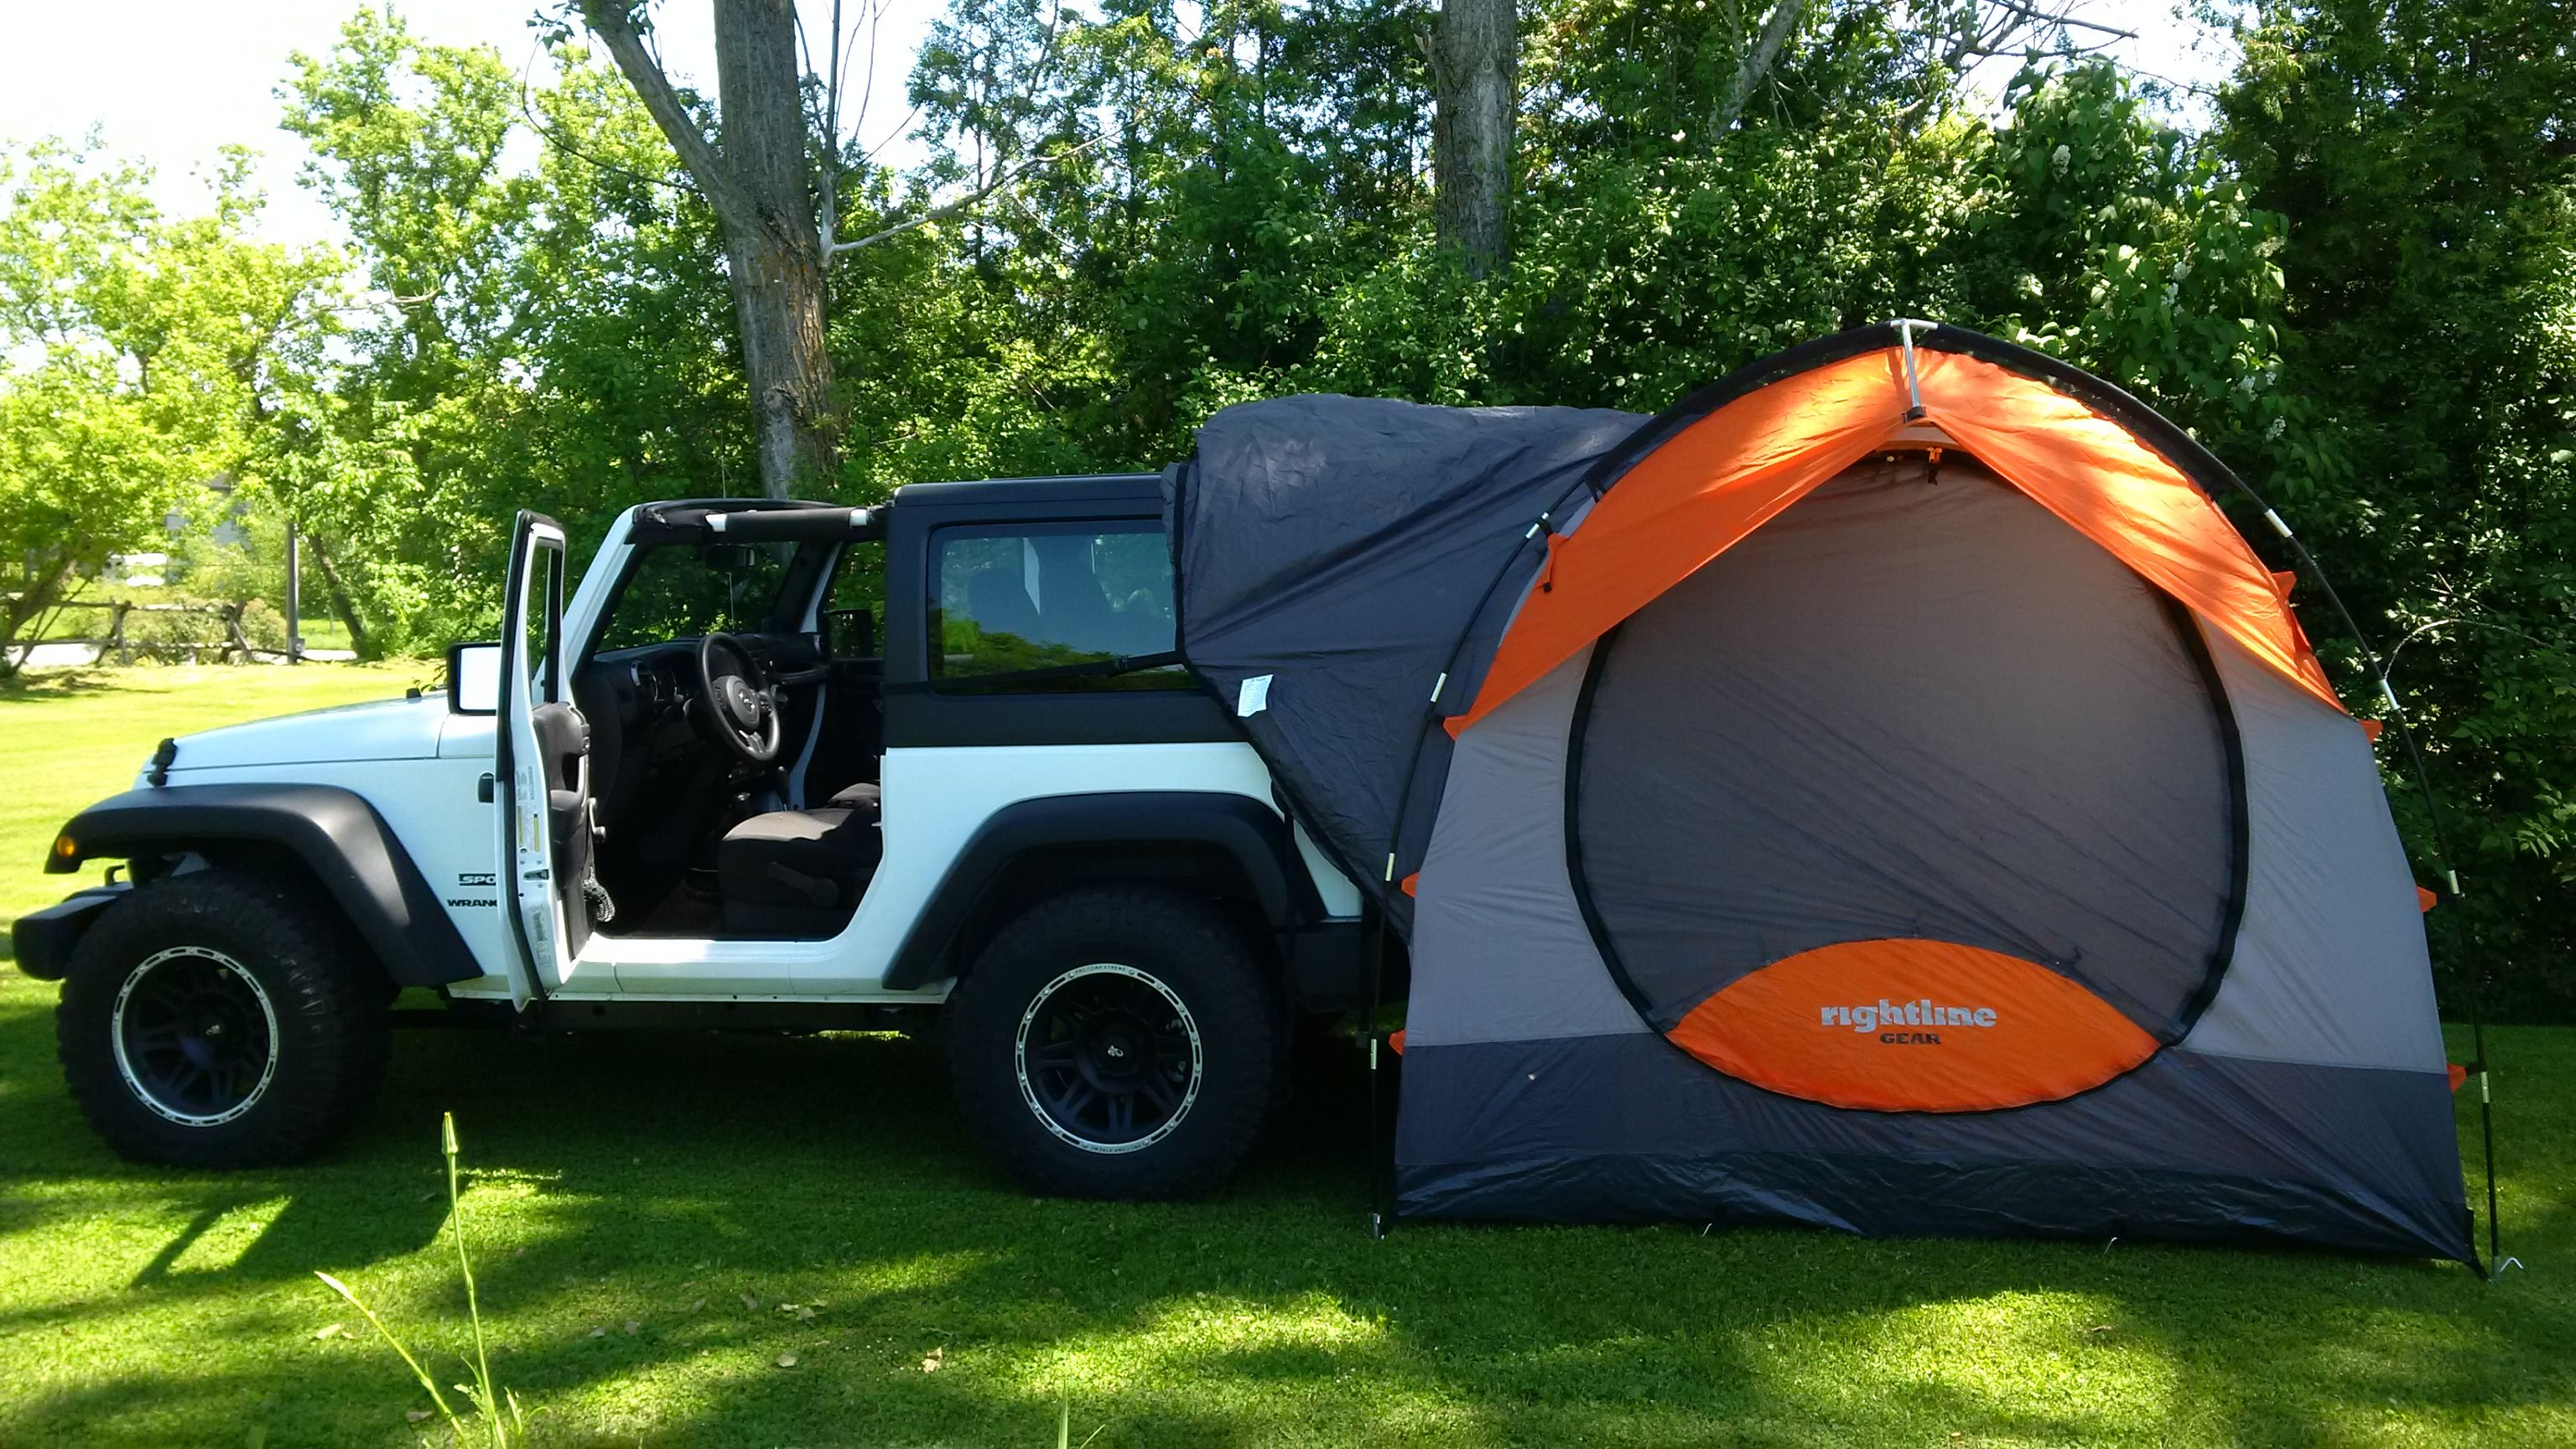 Jeep Products Suv Tent Wrangler Rightline Gear Jeep Tent Suv Tent Jeep Wrangler